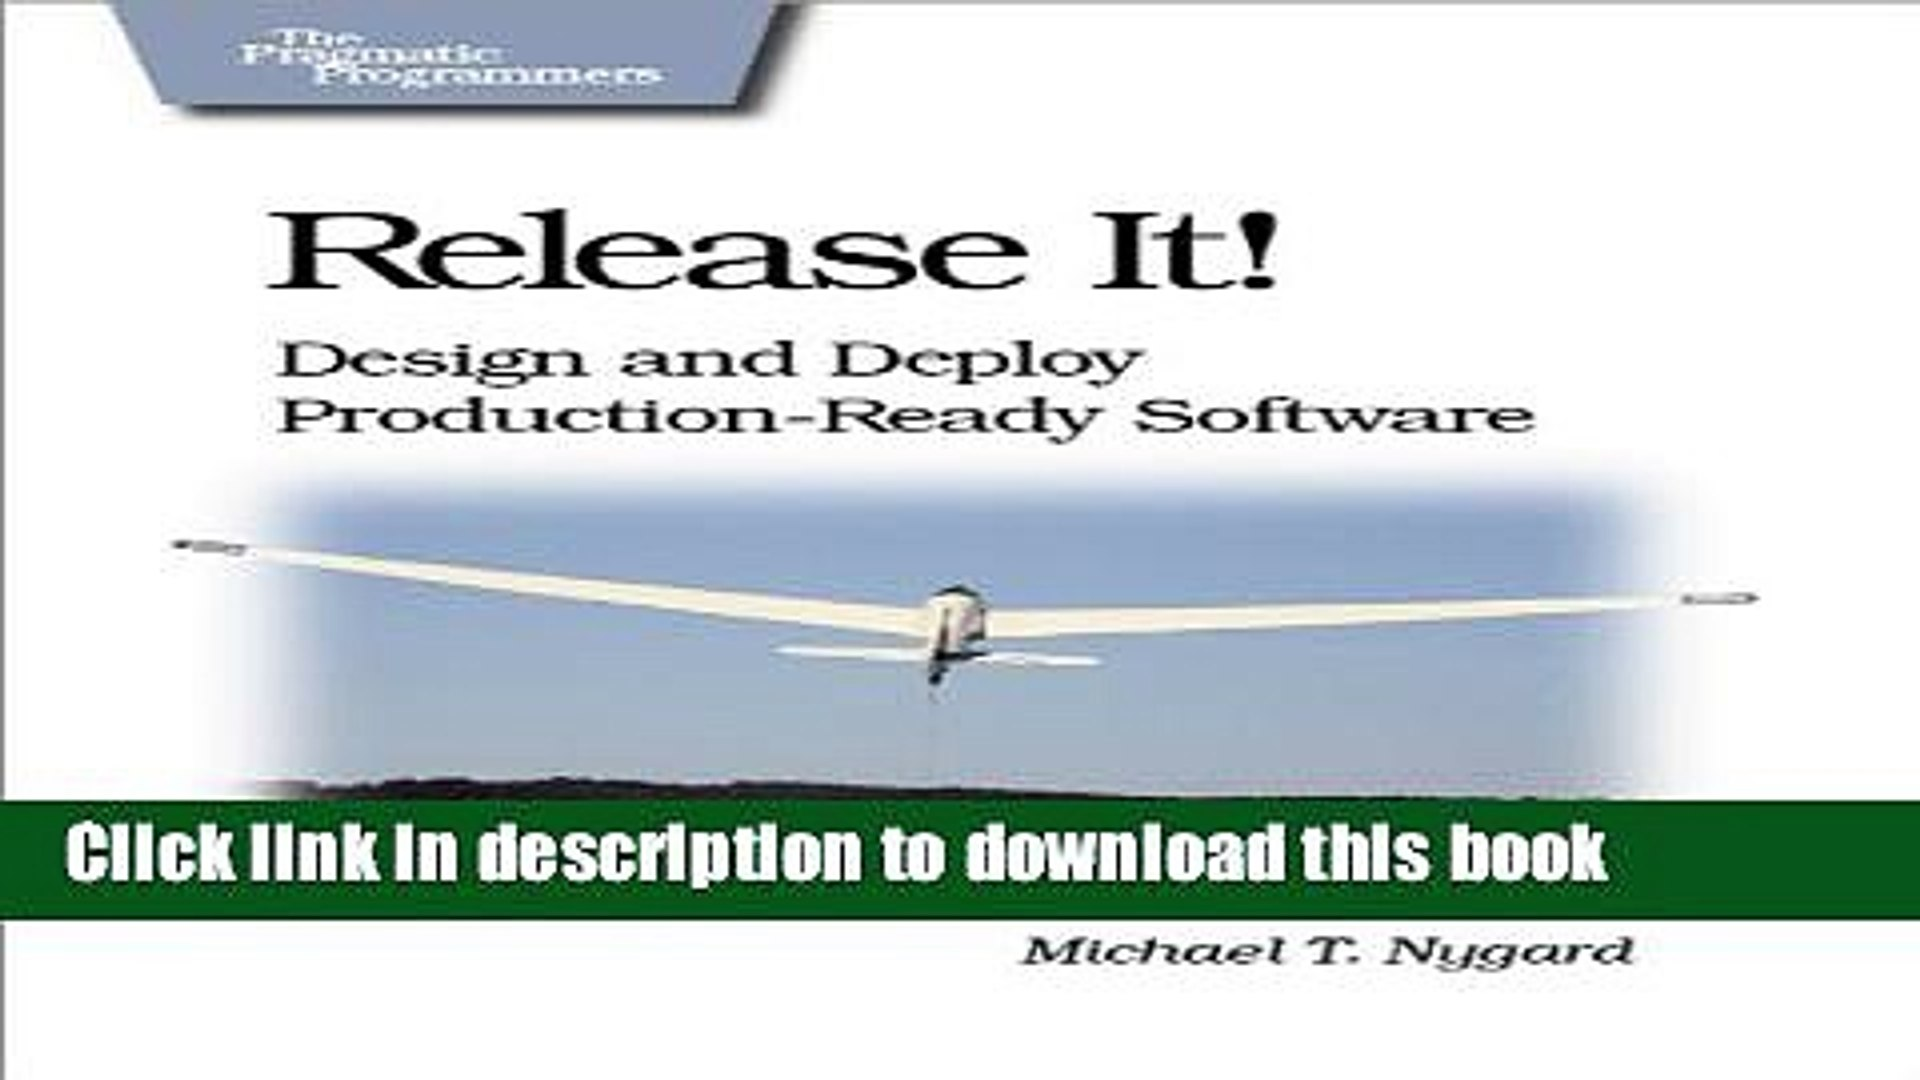 [Download] Release It!: Design and Deploy Production-Ready Software  (Pragmatic Programmers)